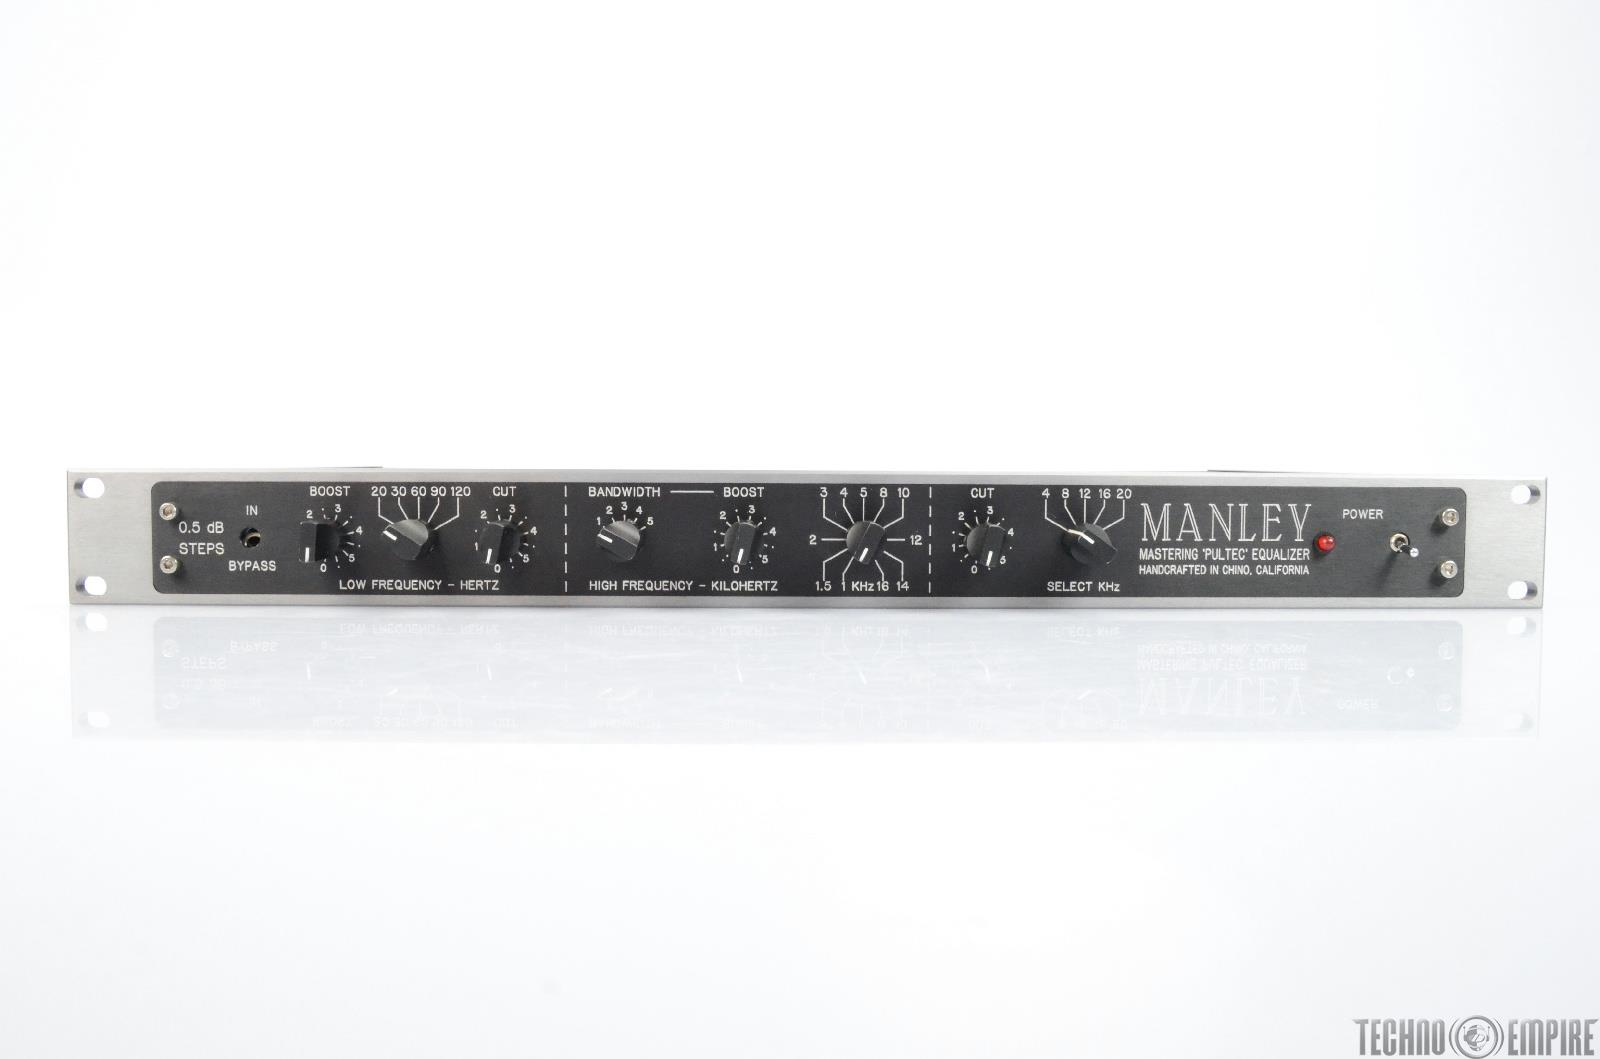 MANLEY Mastering Pultec Equalizer EQP-1A EQ #25705